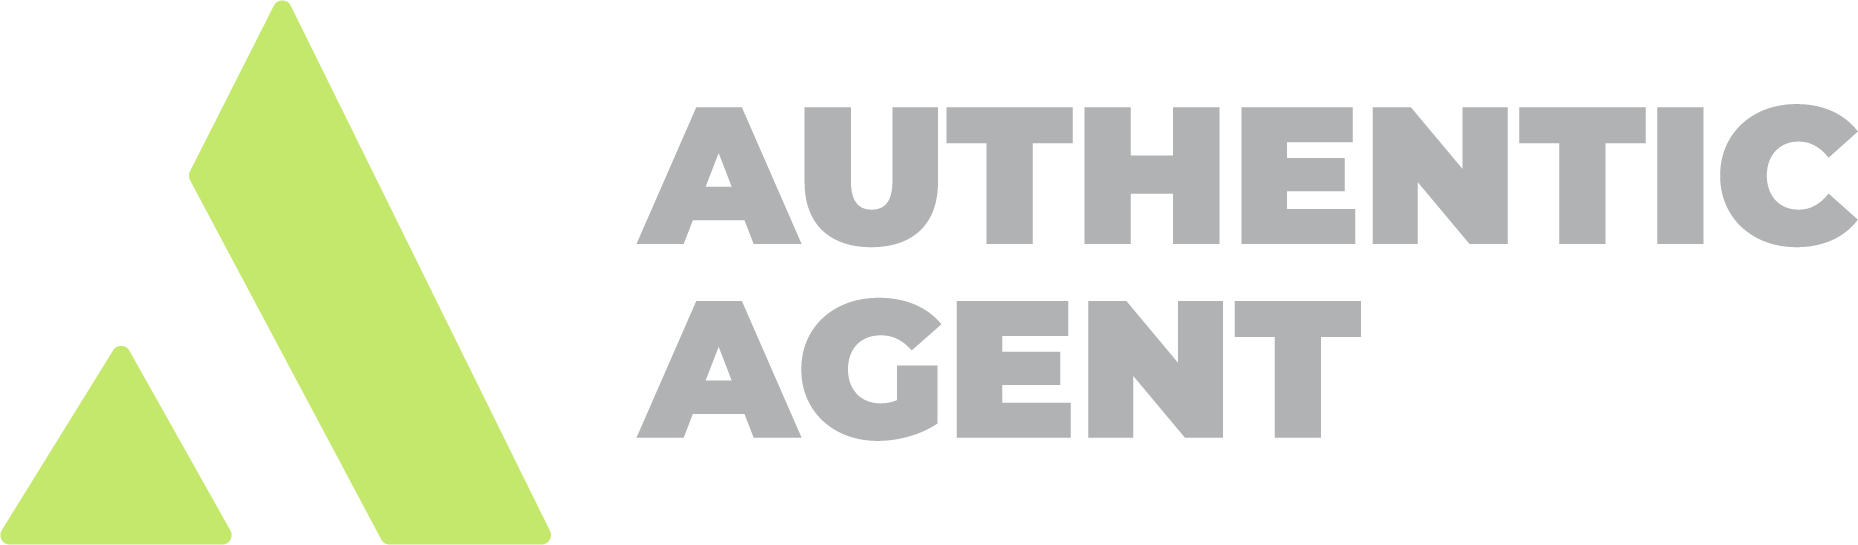 Authentic Agent